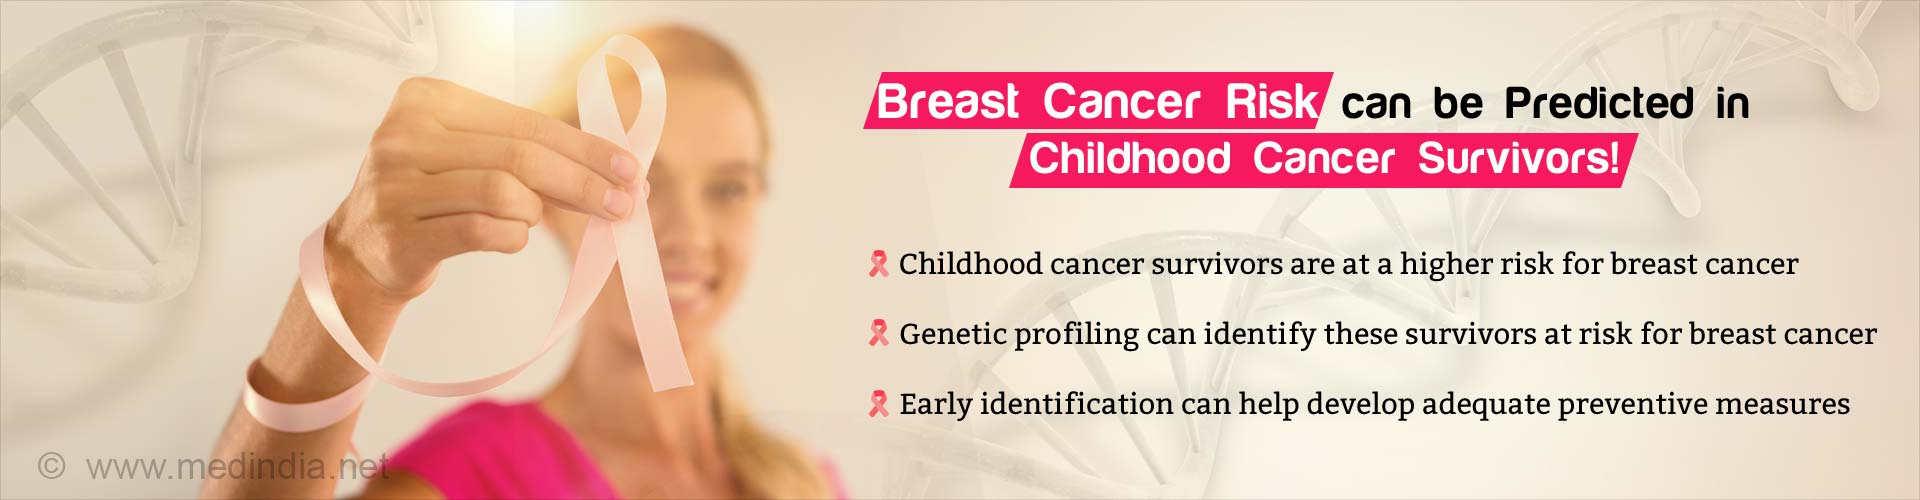 Genetic Profiling Predicts Breast Cancer Risk in Childhood Cancer Survivors